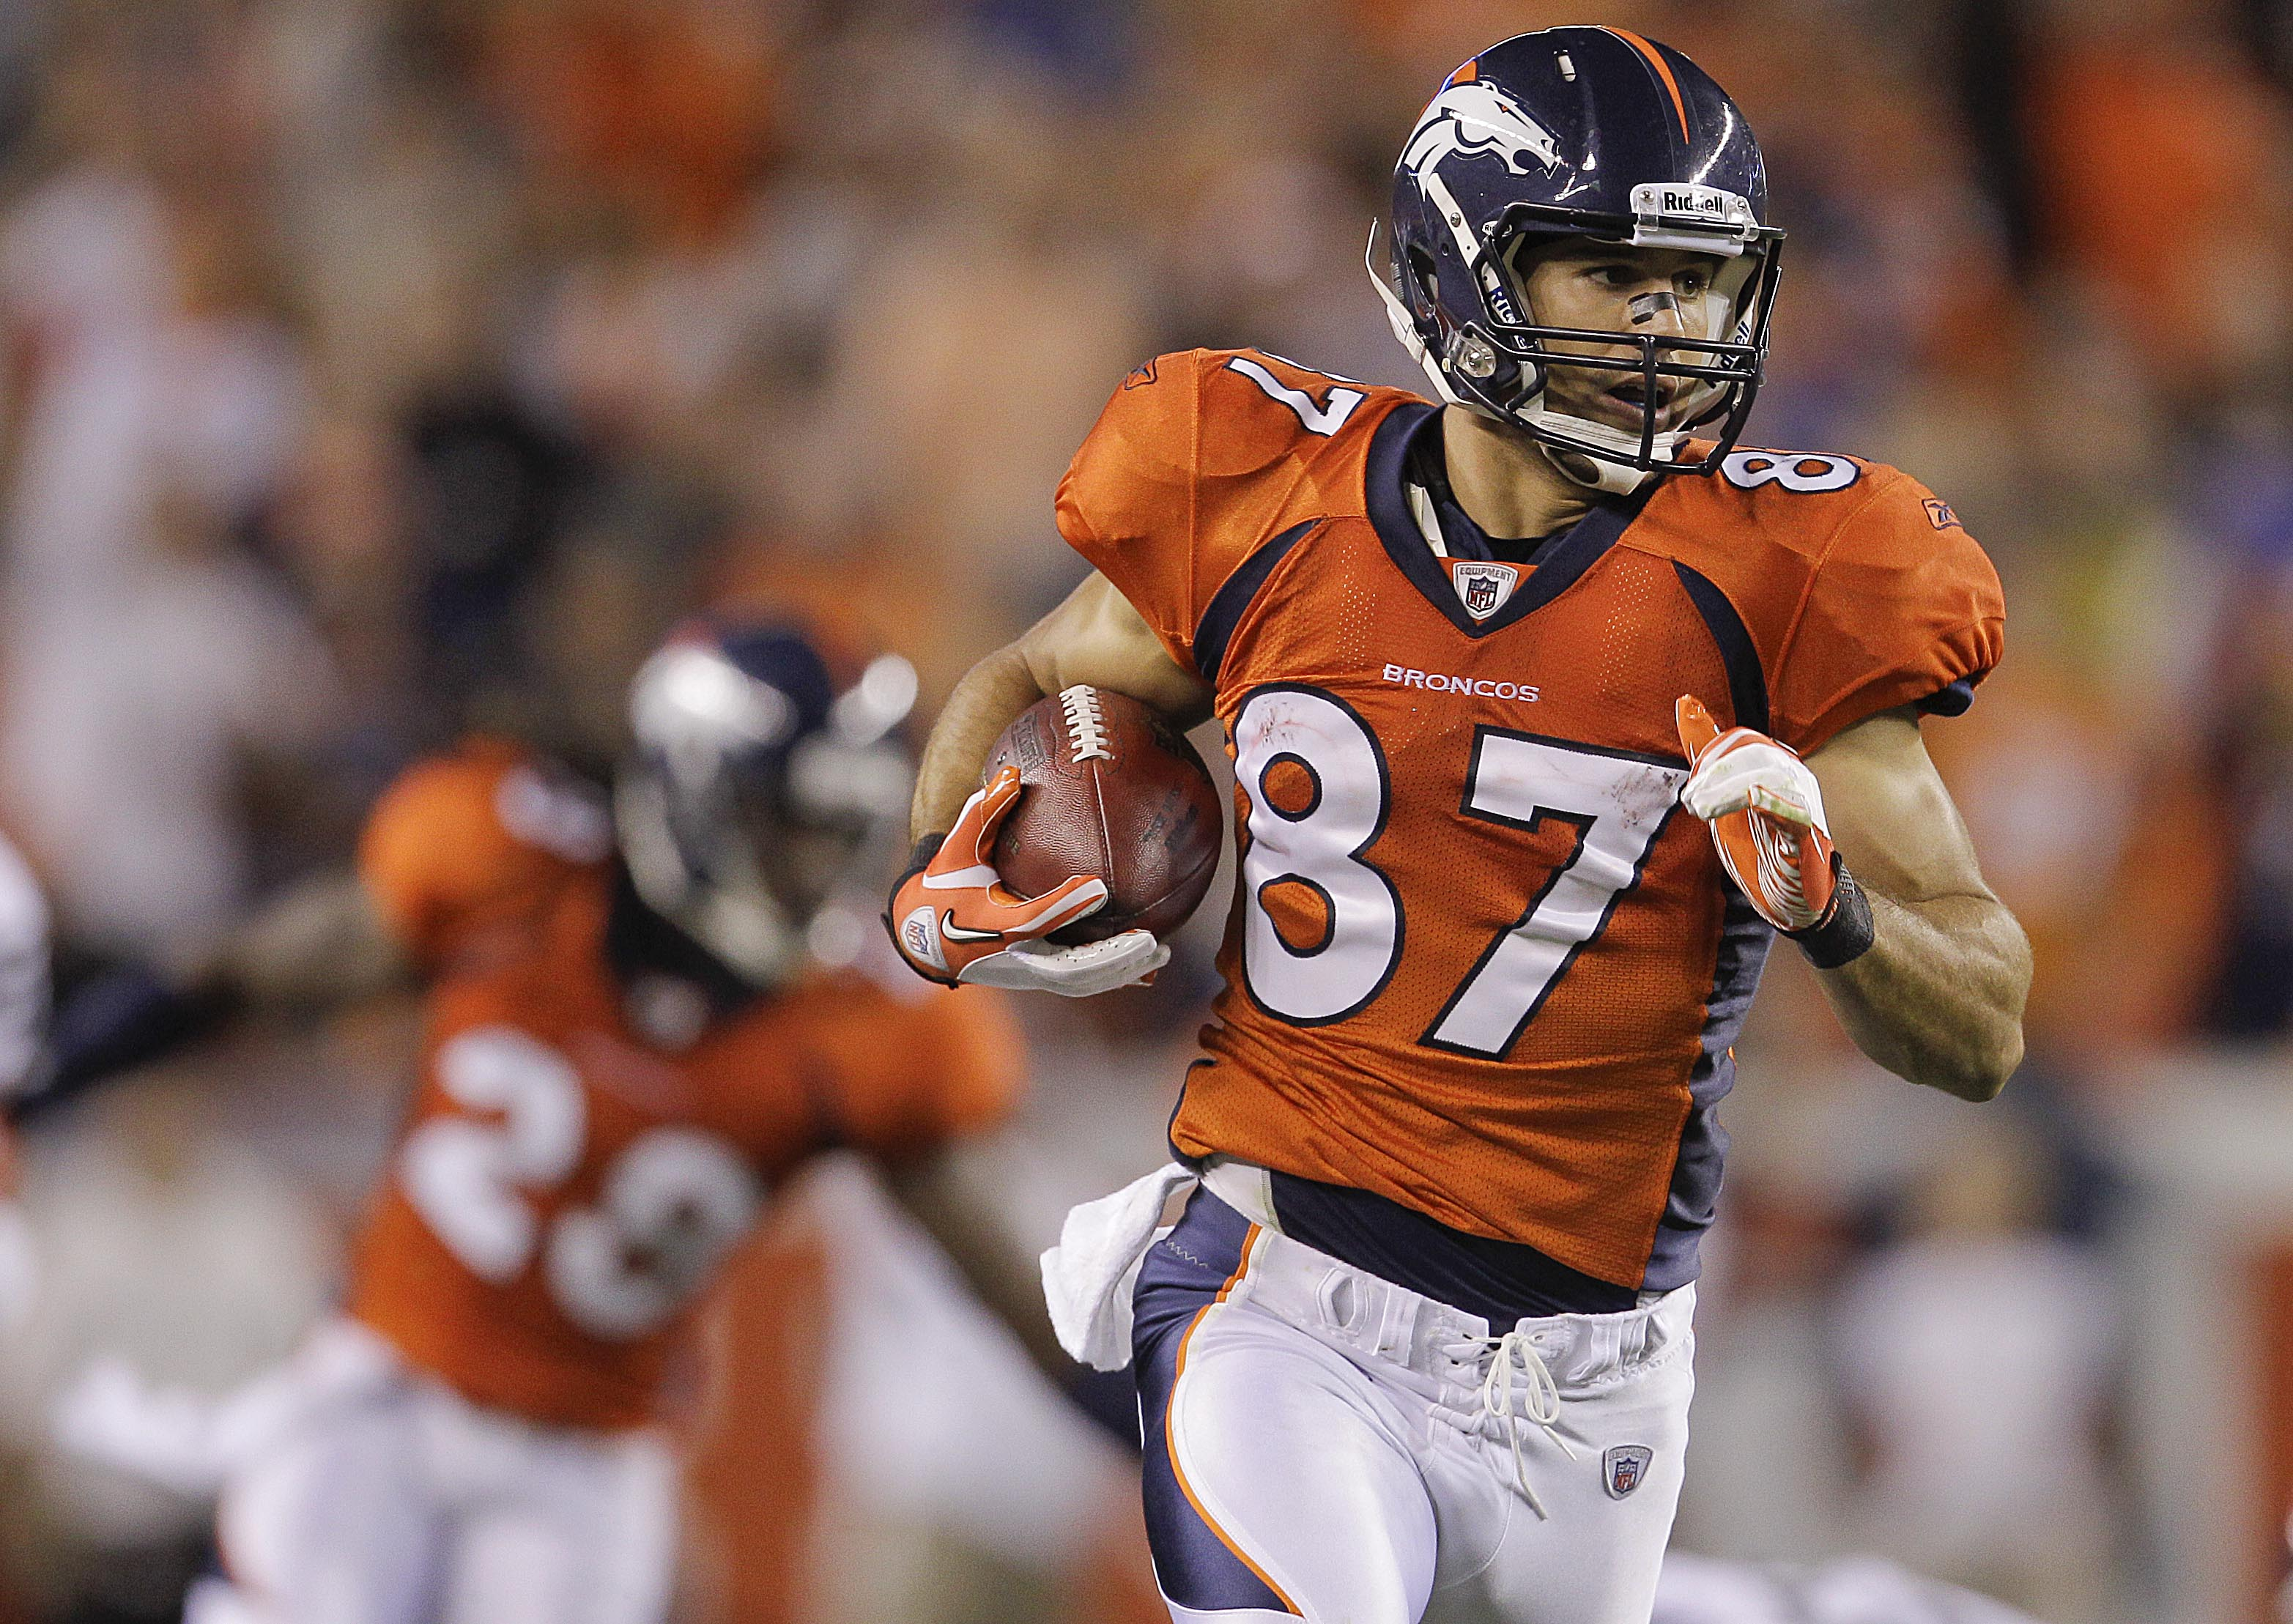 Broncos' Eric Decker in Reality Show – i'm not a fan ...